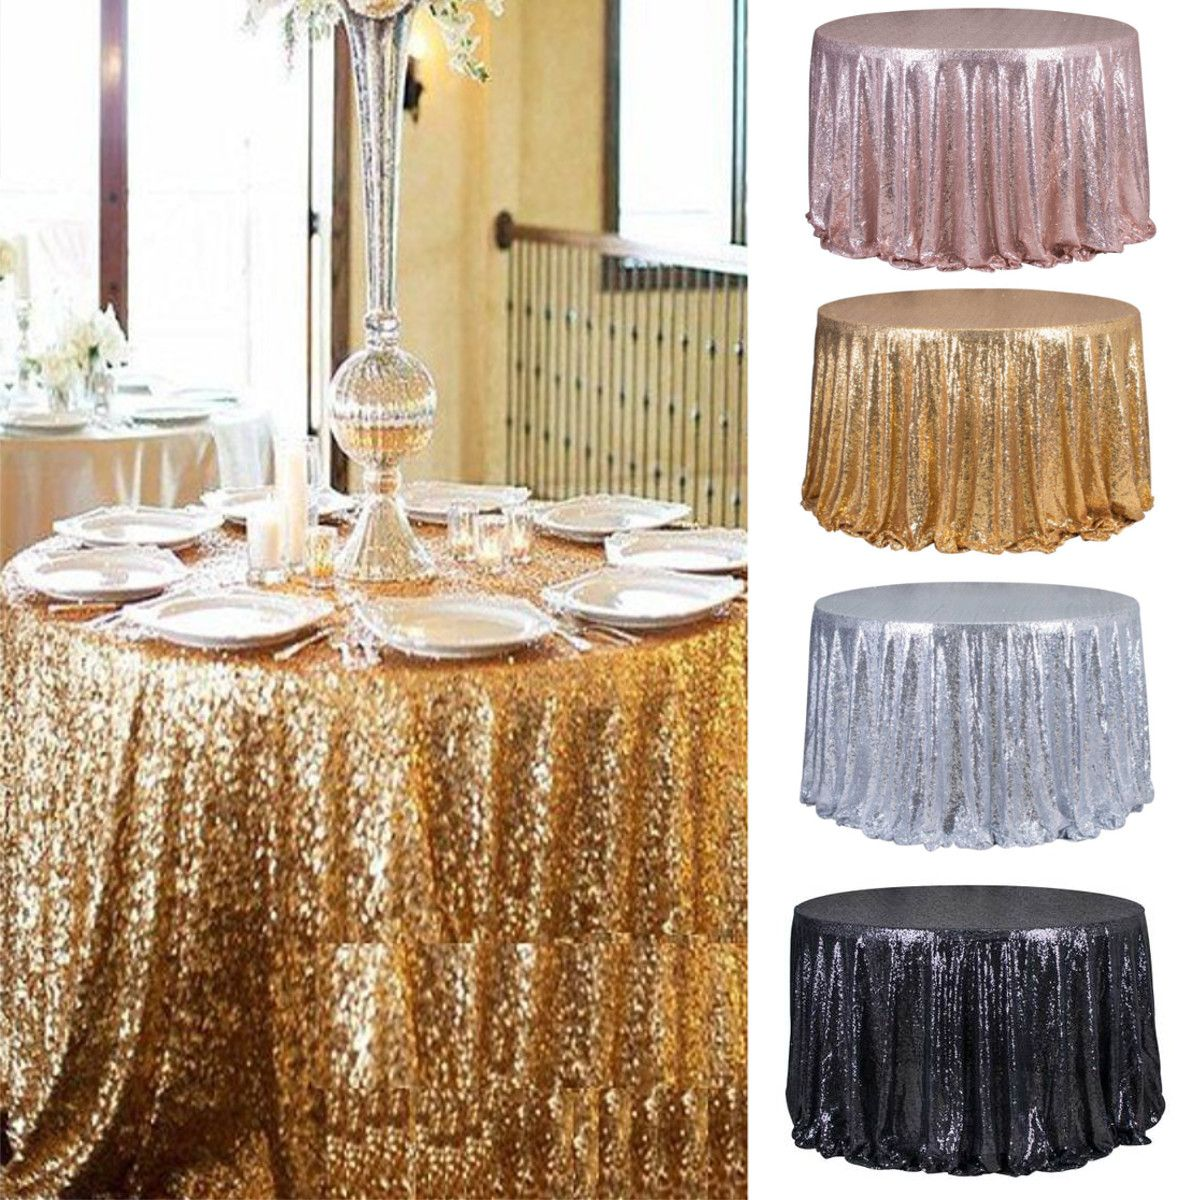 48 Round Sparkle Sequin Tablecloth Cover For Wedding Party Banquet Cake Dessert Table Exhibition Sequin Tablecloth Glitter Table Cloths Cake Table Decorations